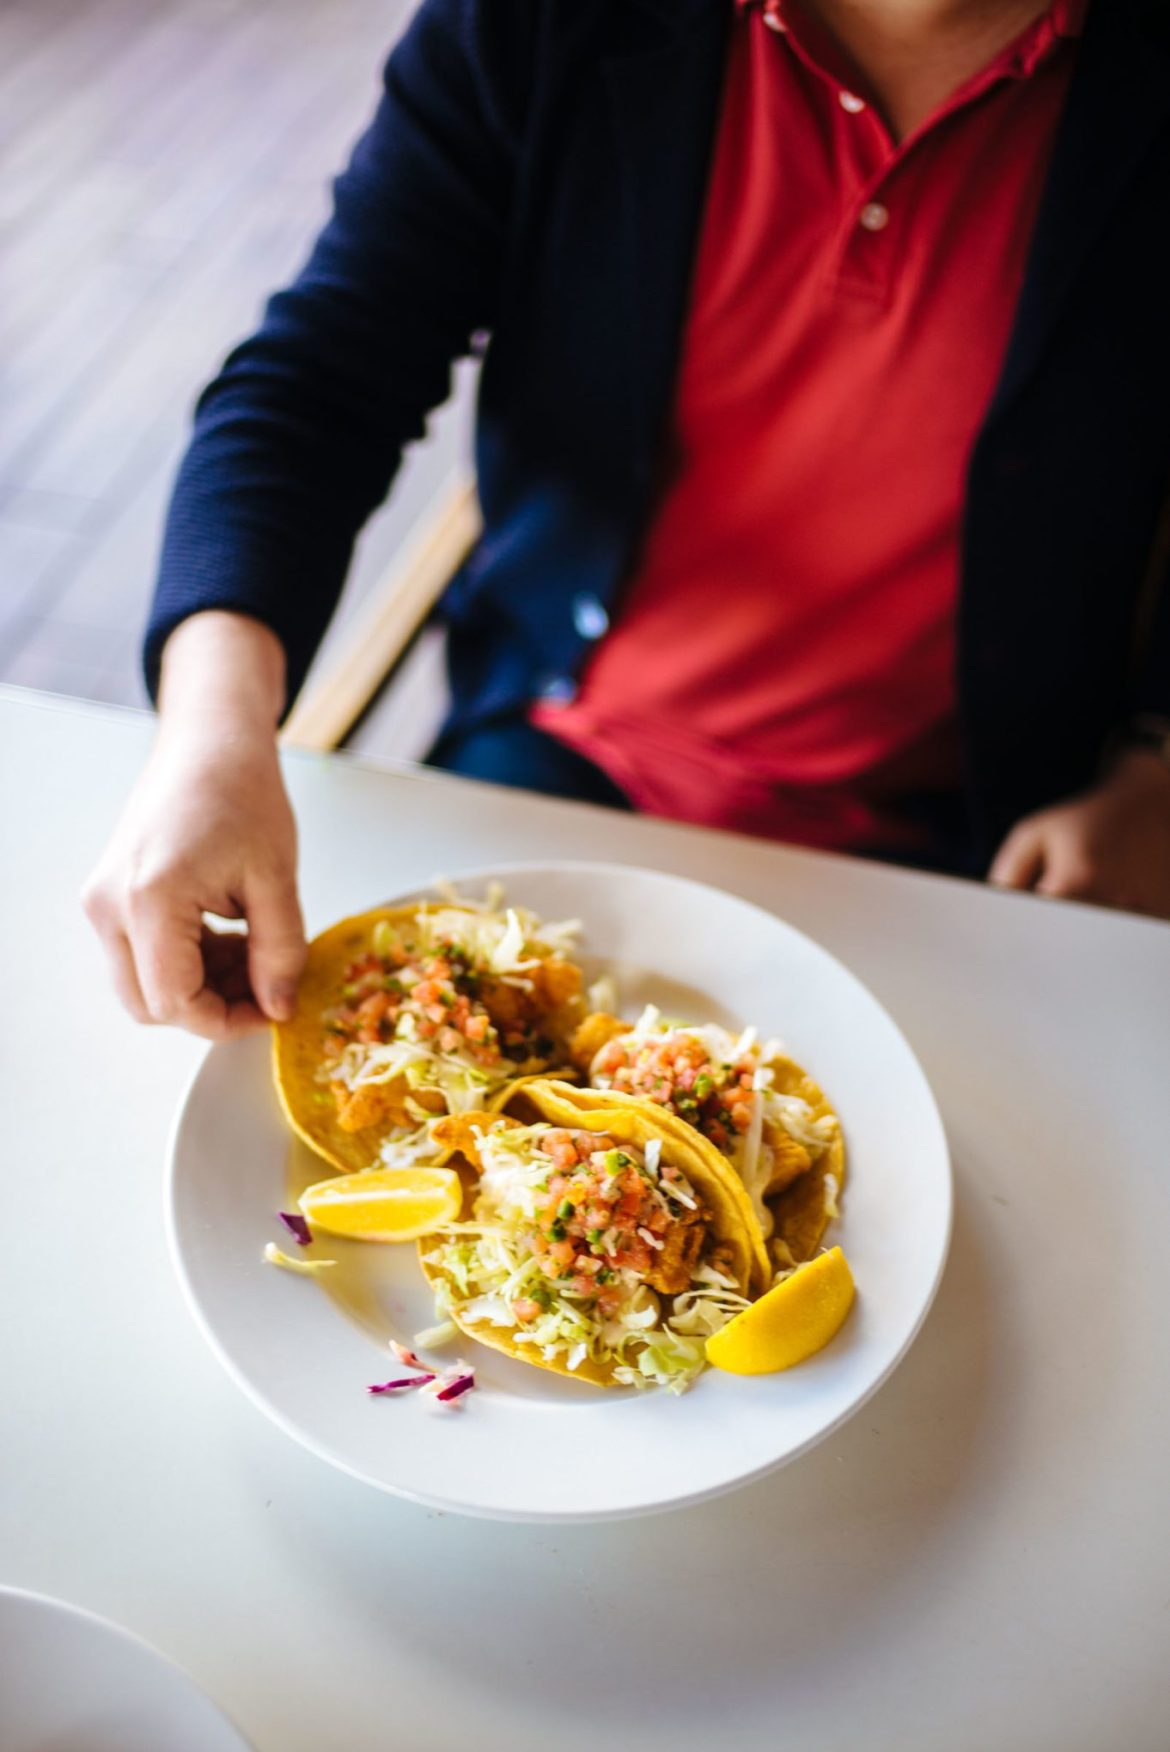 Find the best fish Tacos at Rubin and Ozzy's in Palm Springs a local recommendation given to the taste edit